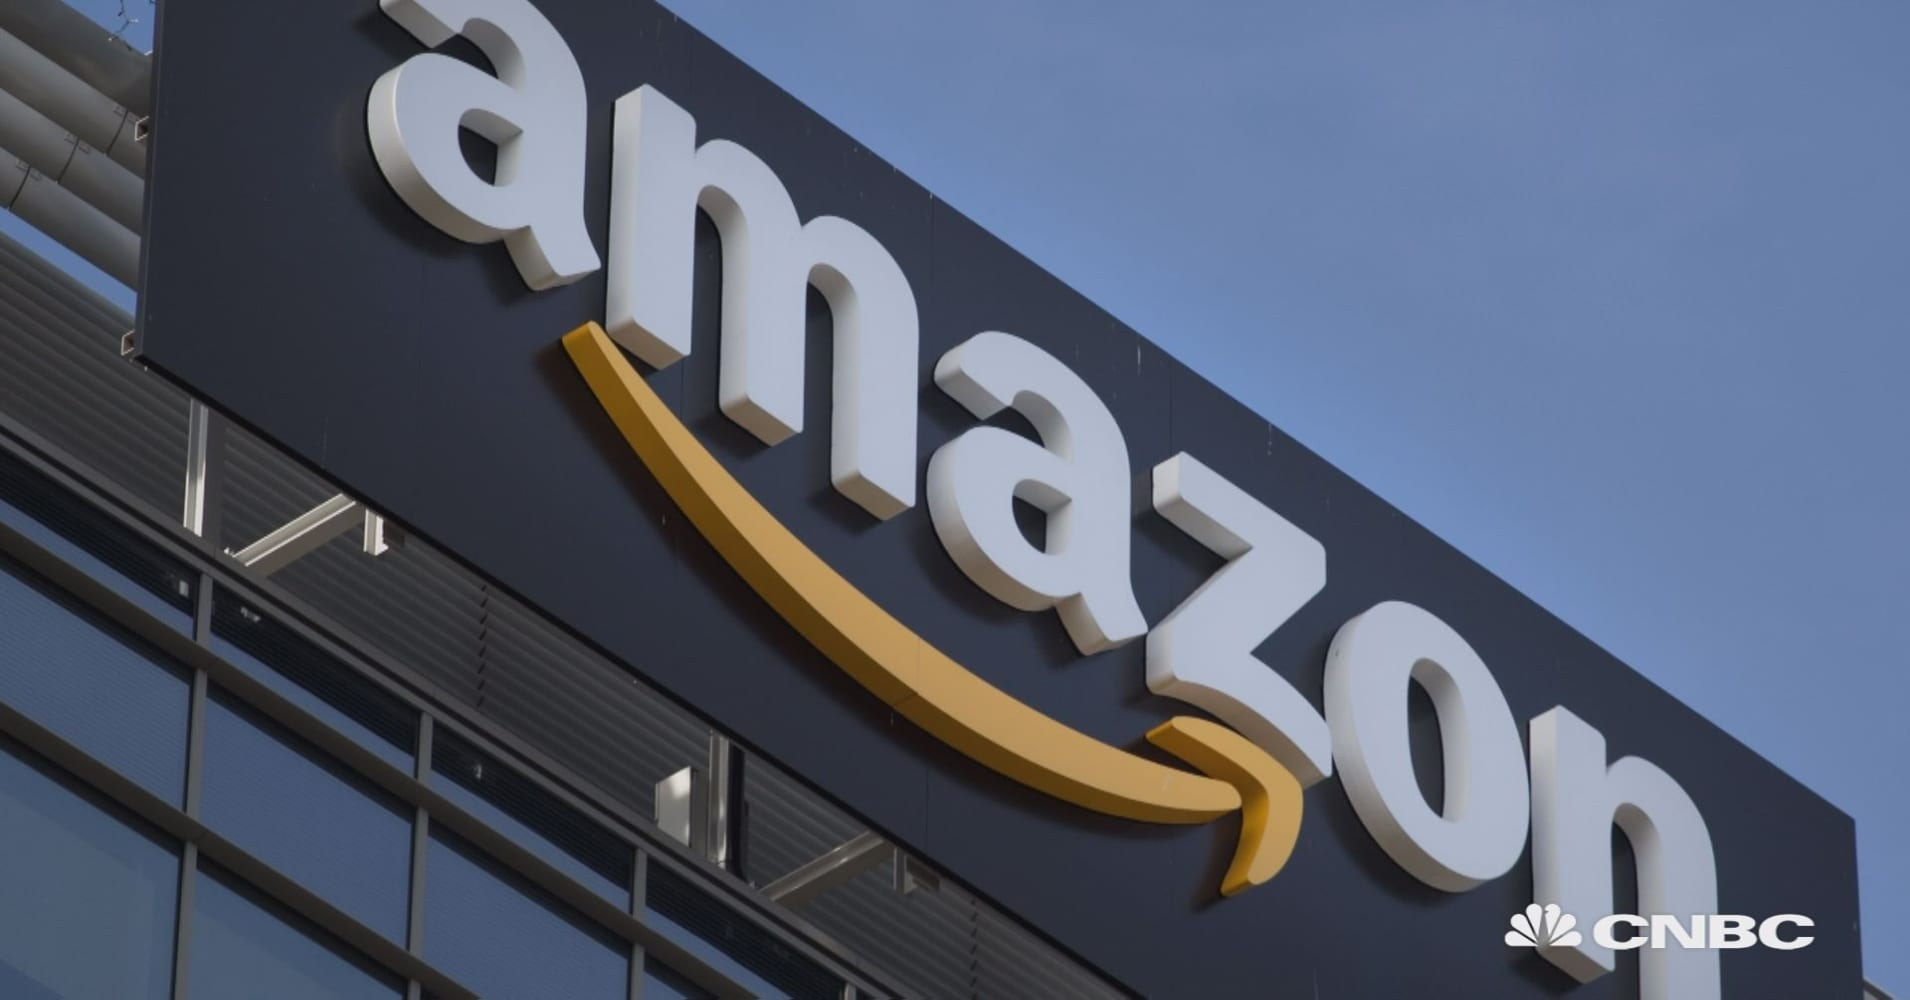 Amazon wants to make it easier to shop its website without a credit card